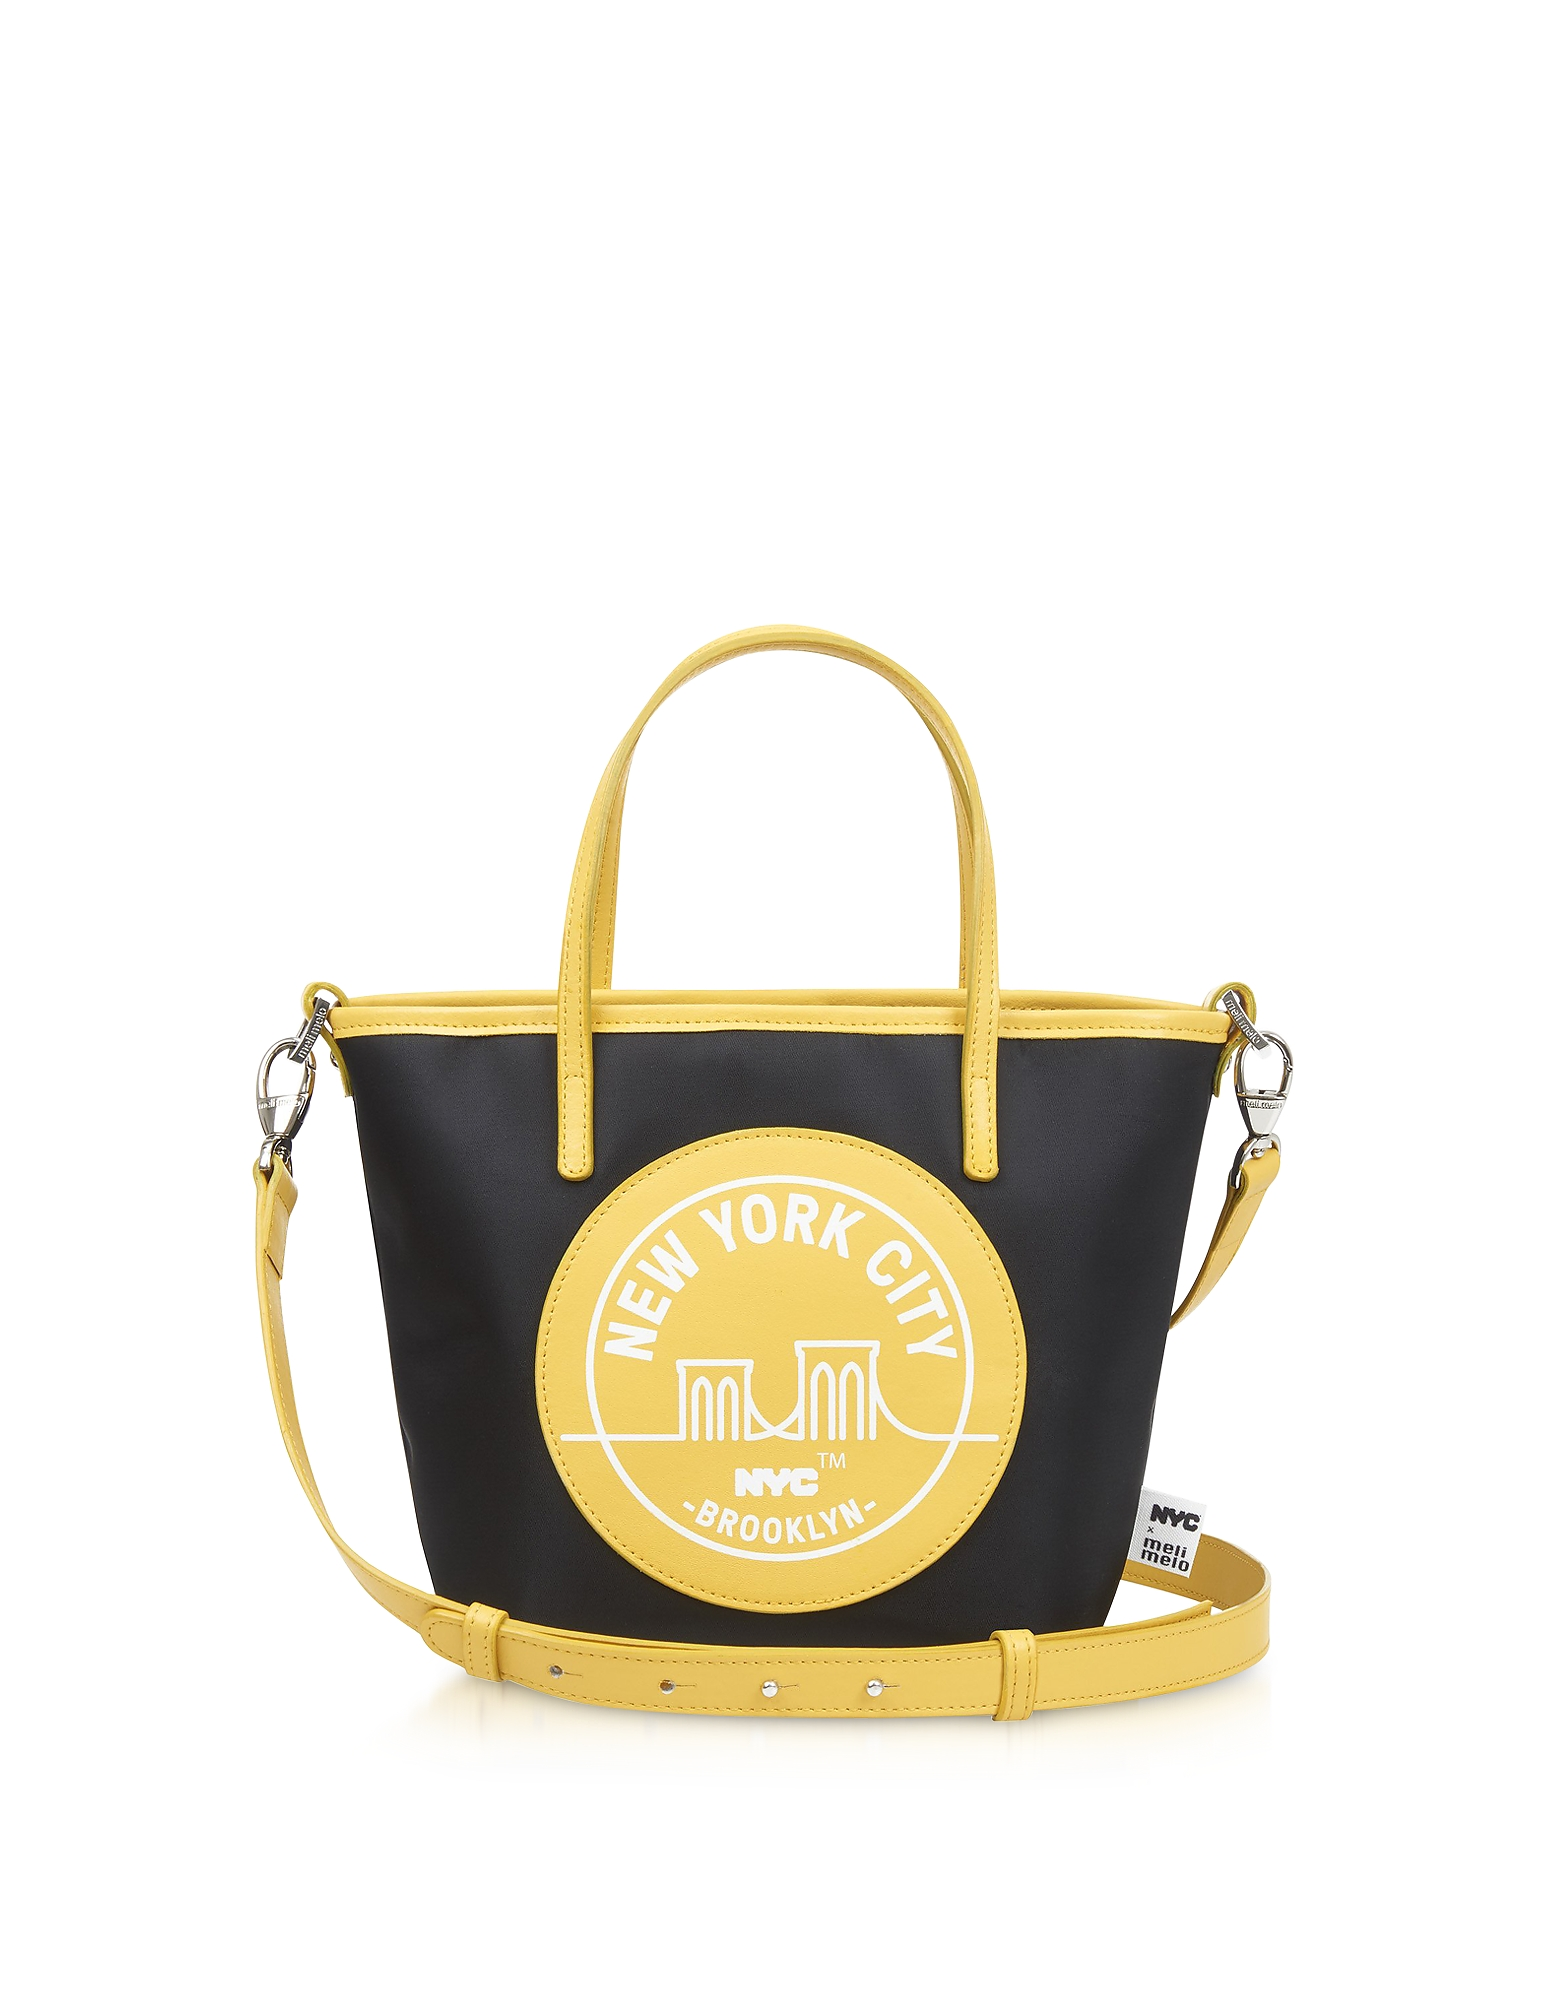 Meli Melo Handbags, Brooklyn Yellow Paige Mini Tote Bag